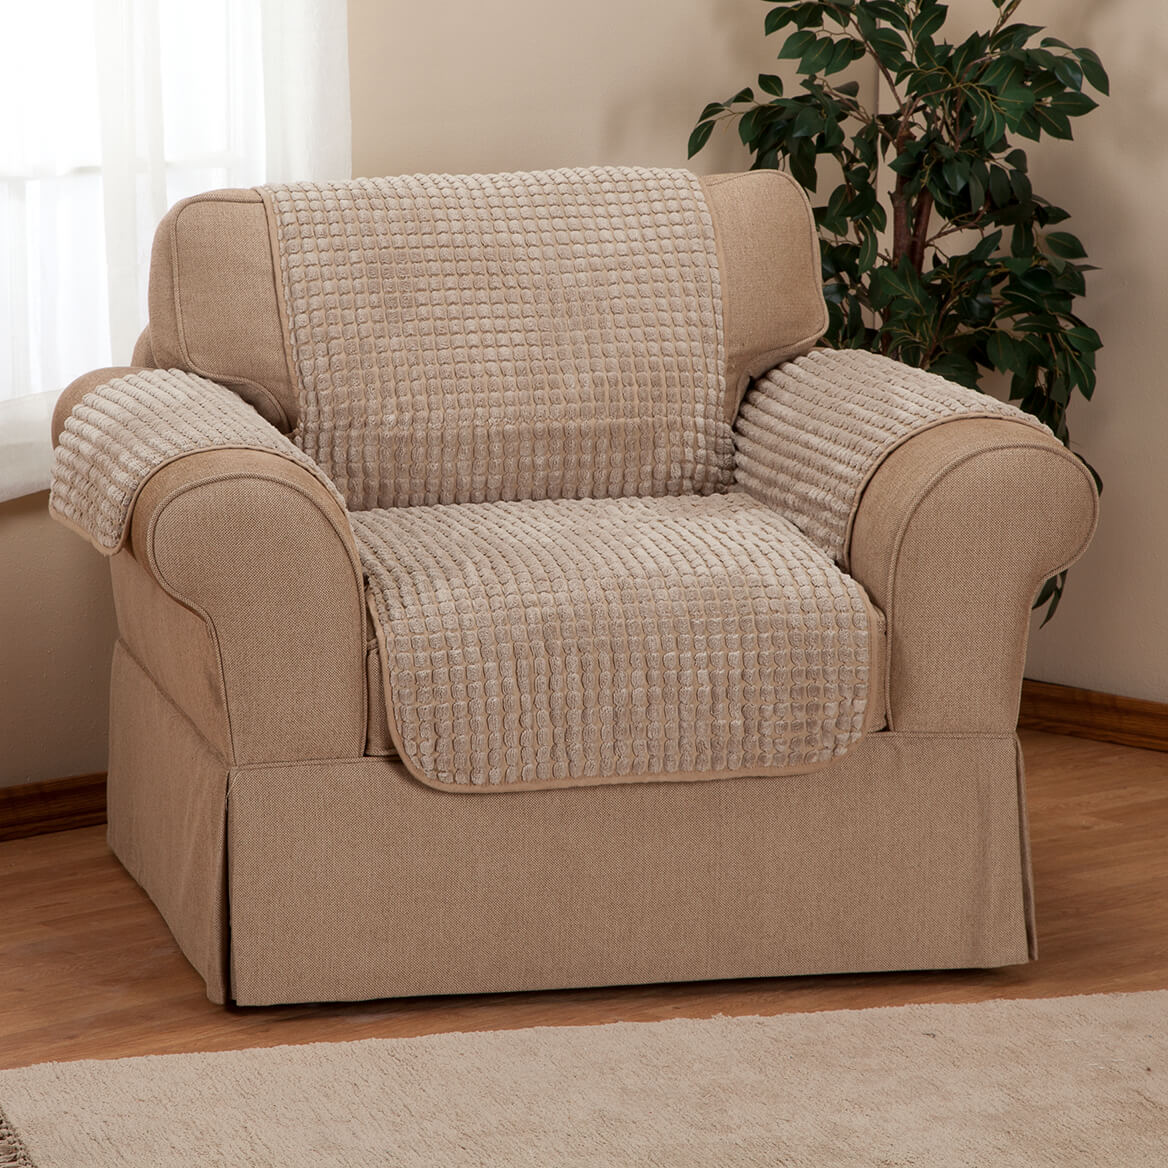 Puff Chair Furniture Protector-349609